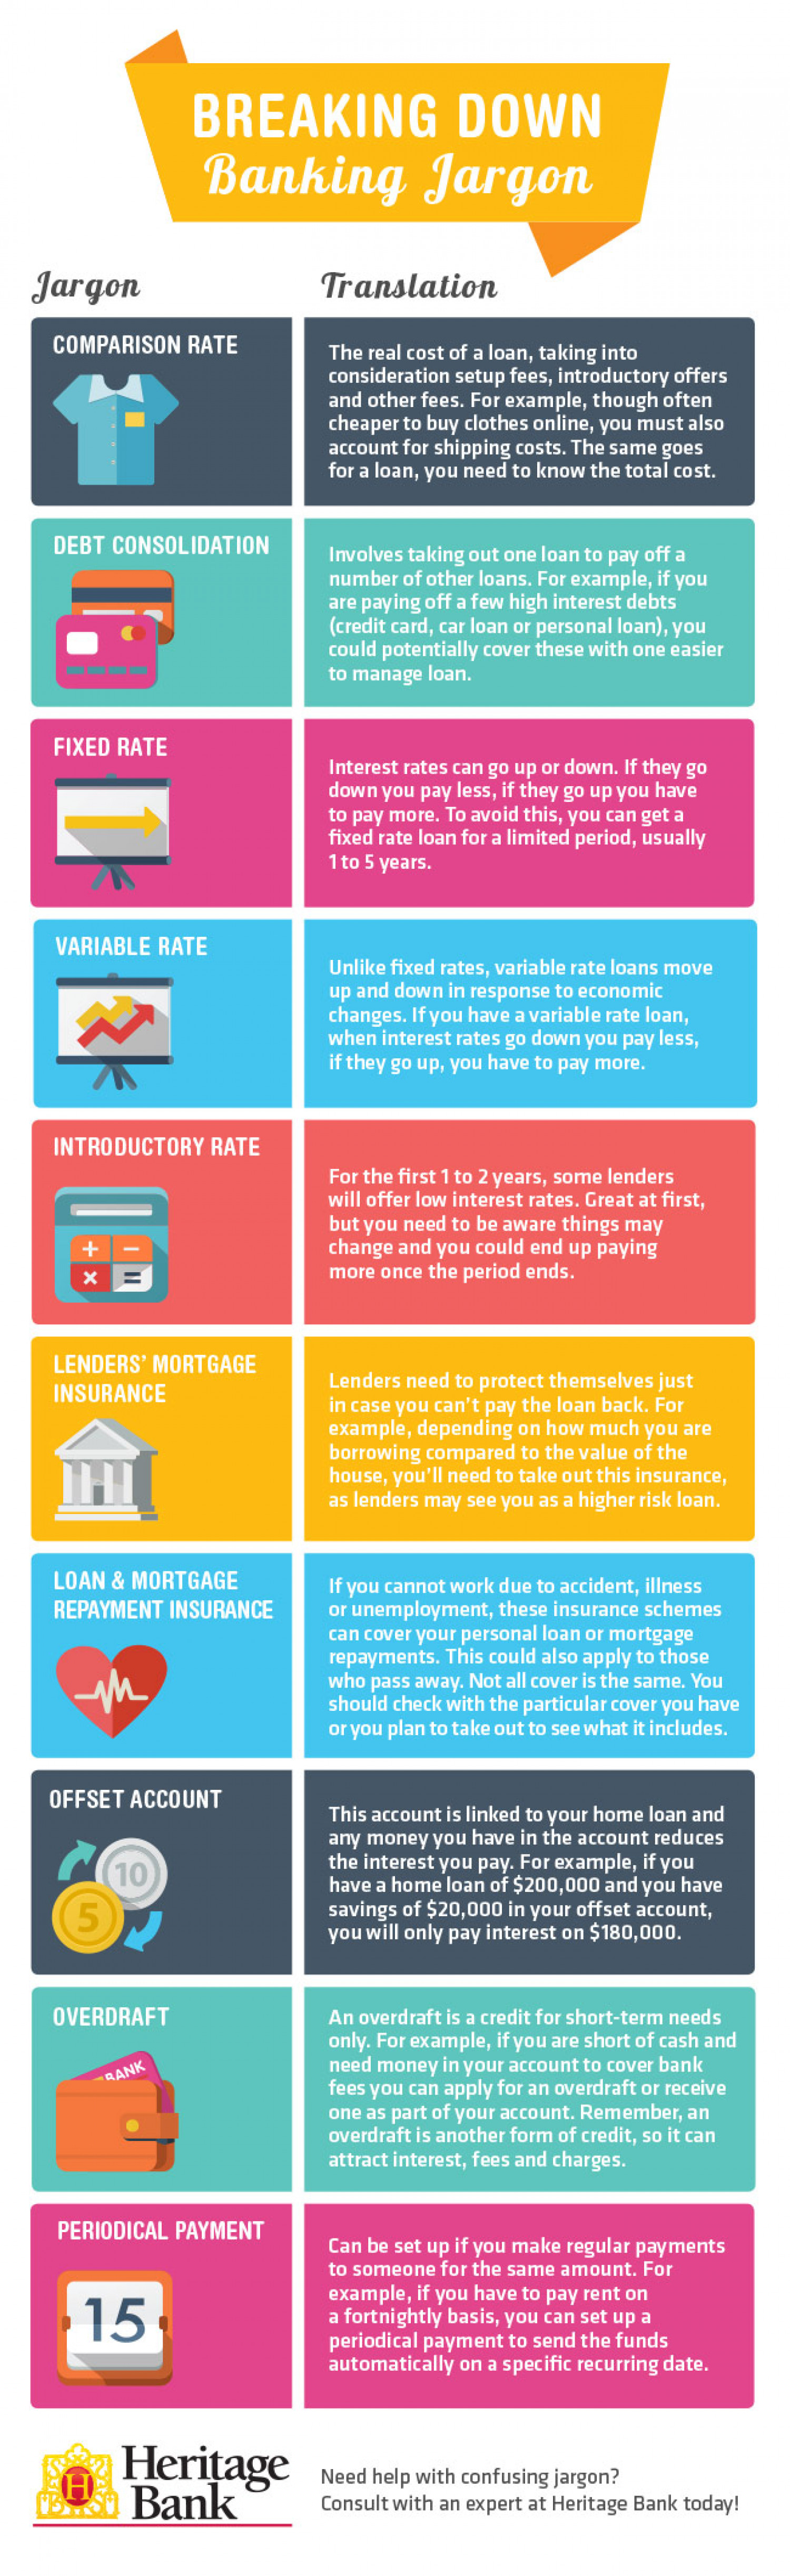 Breaking Down Banking Jargon Infographic